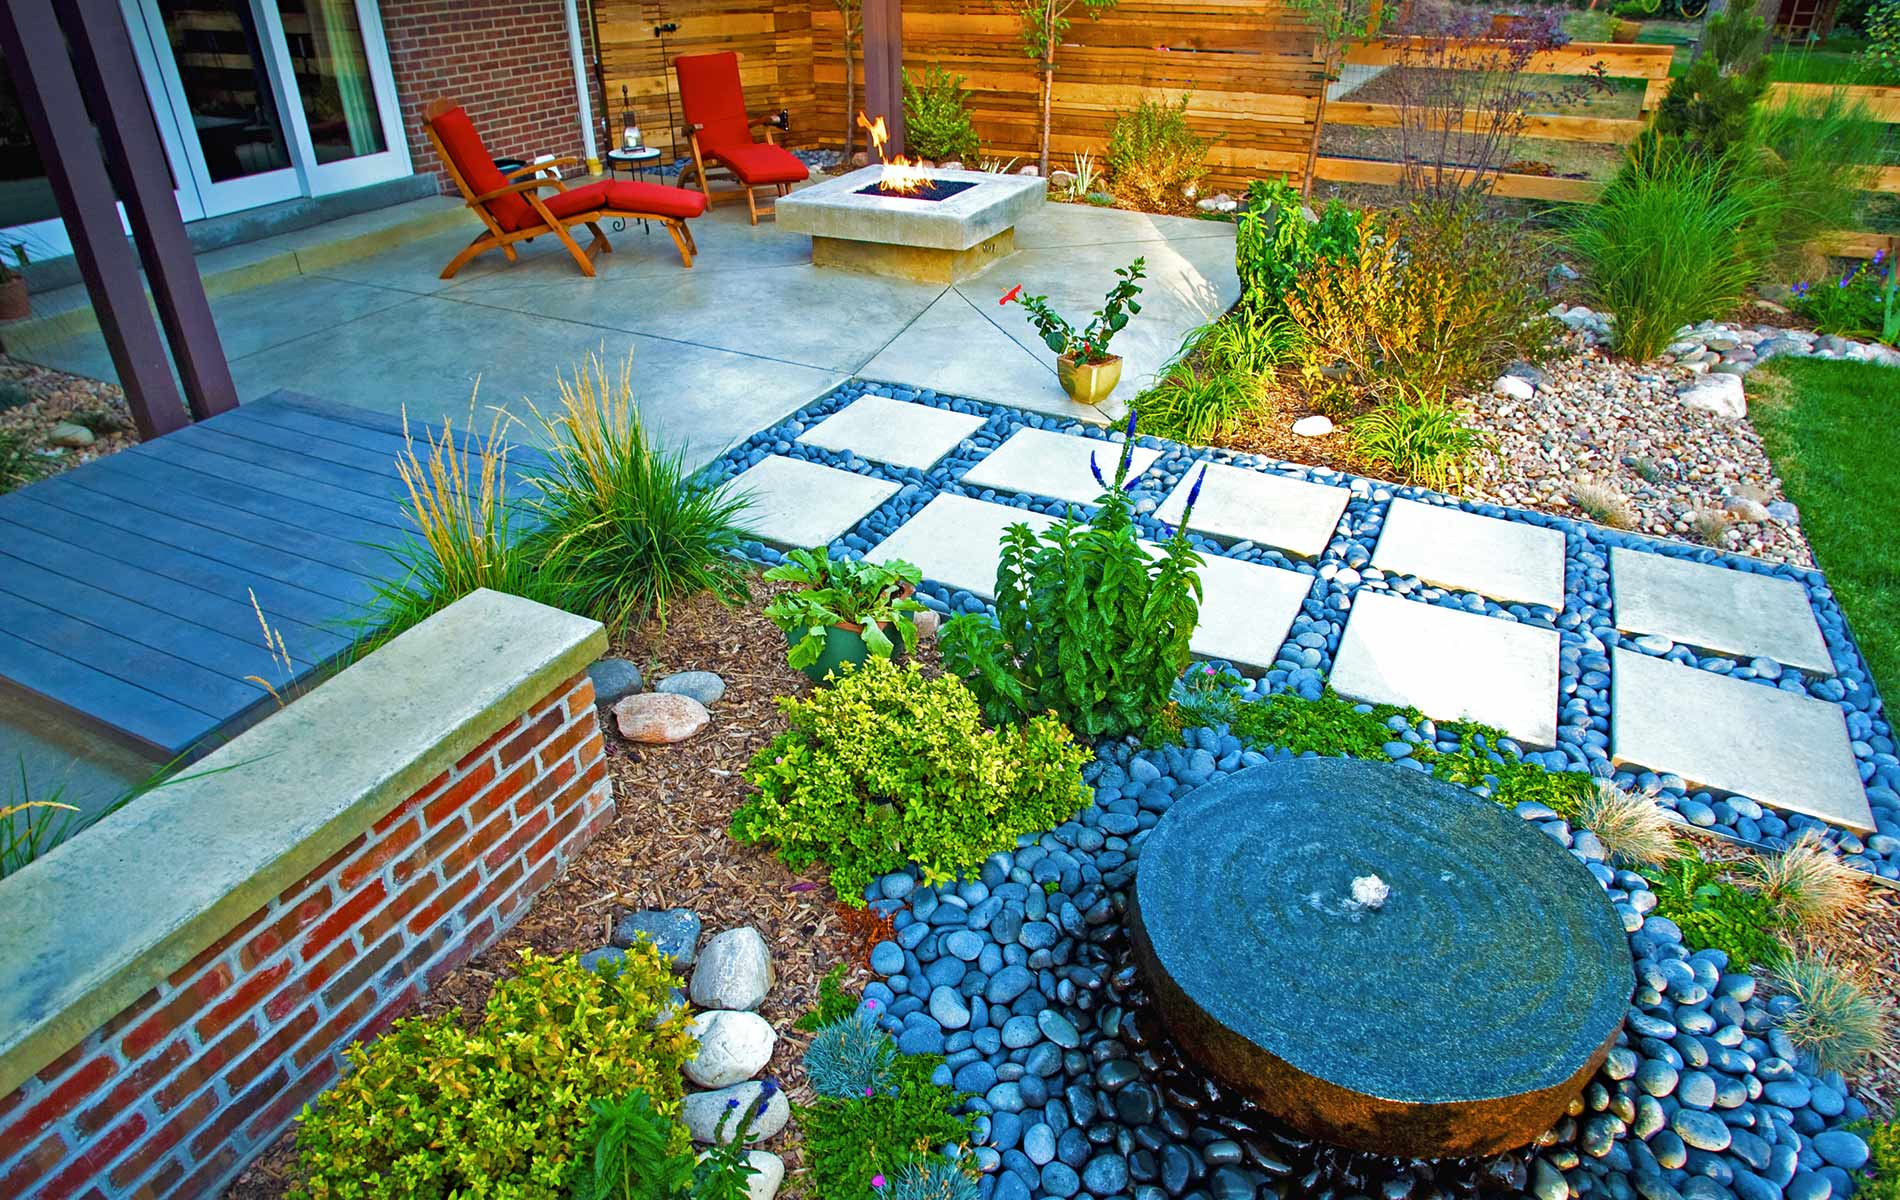 Award Winning Outdoor Room with Custom Milled Arbor  Mile High Landscaping